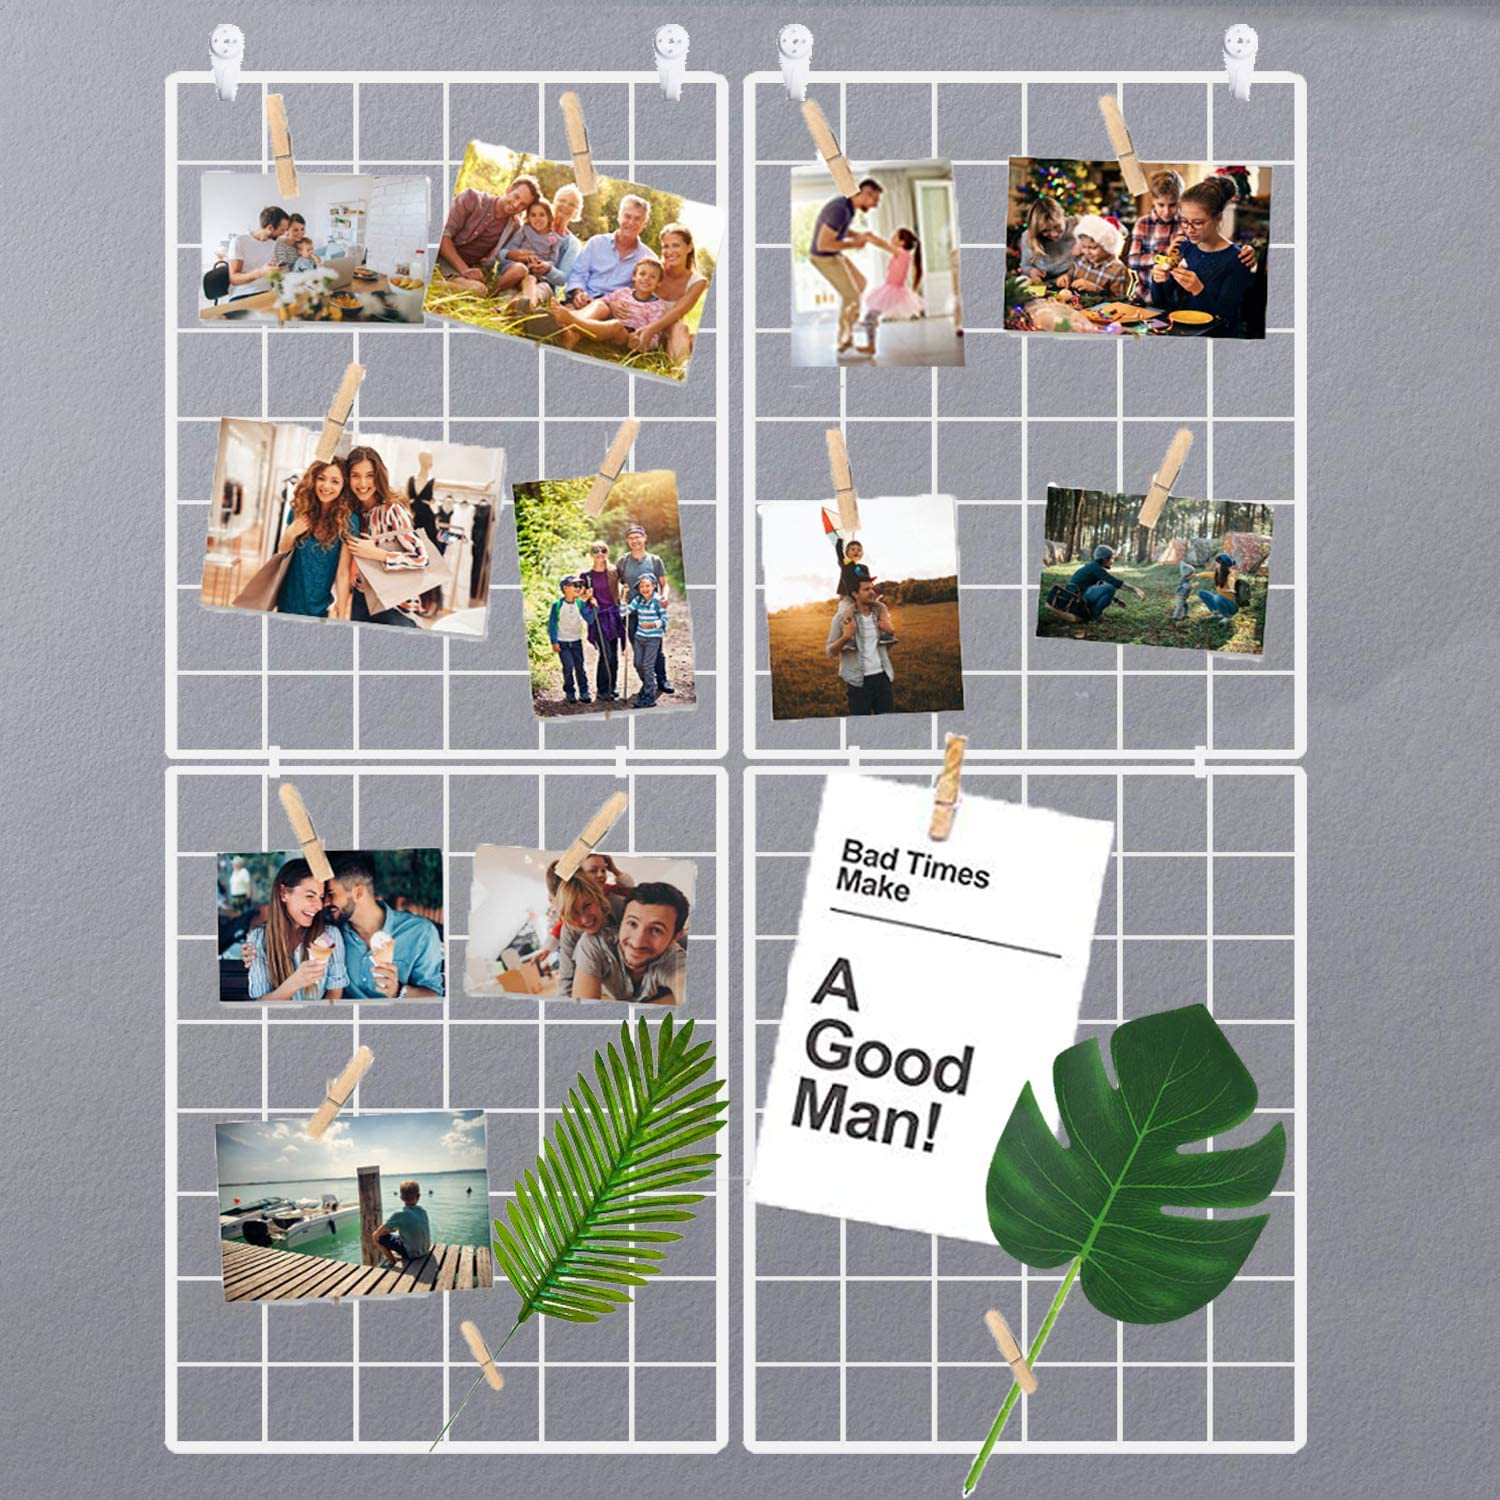 Halvalo Wire Grid Panel Wall Grid Display Board Wall Organizer Photo Picture Display Frames Wall Picture Holder Mesh Memo Board (2 Pack)